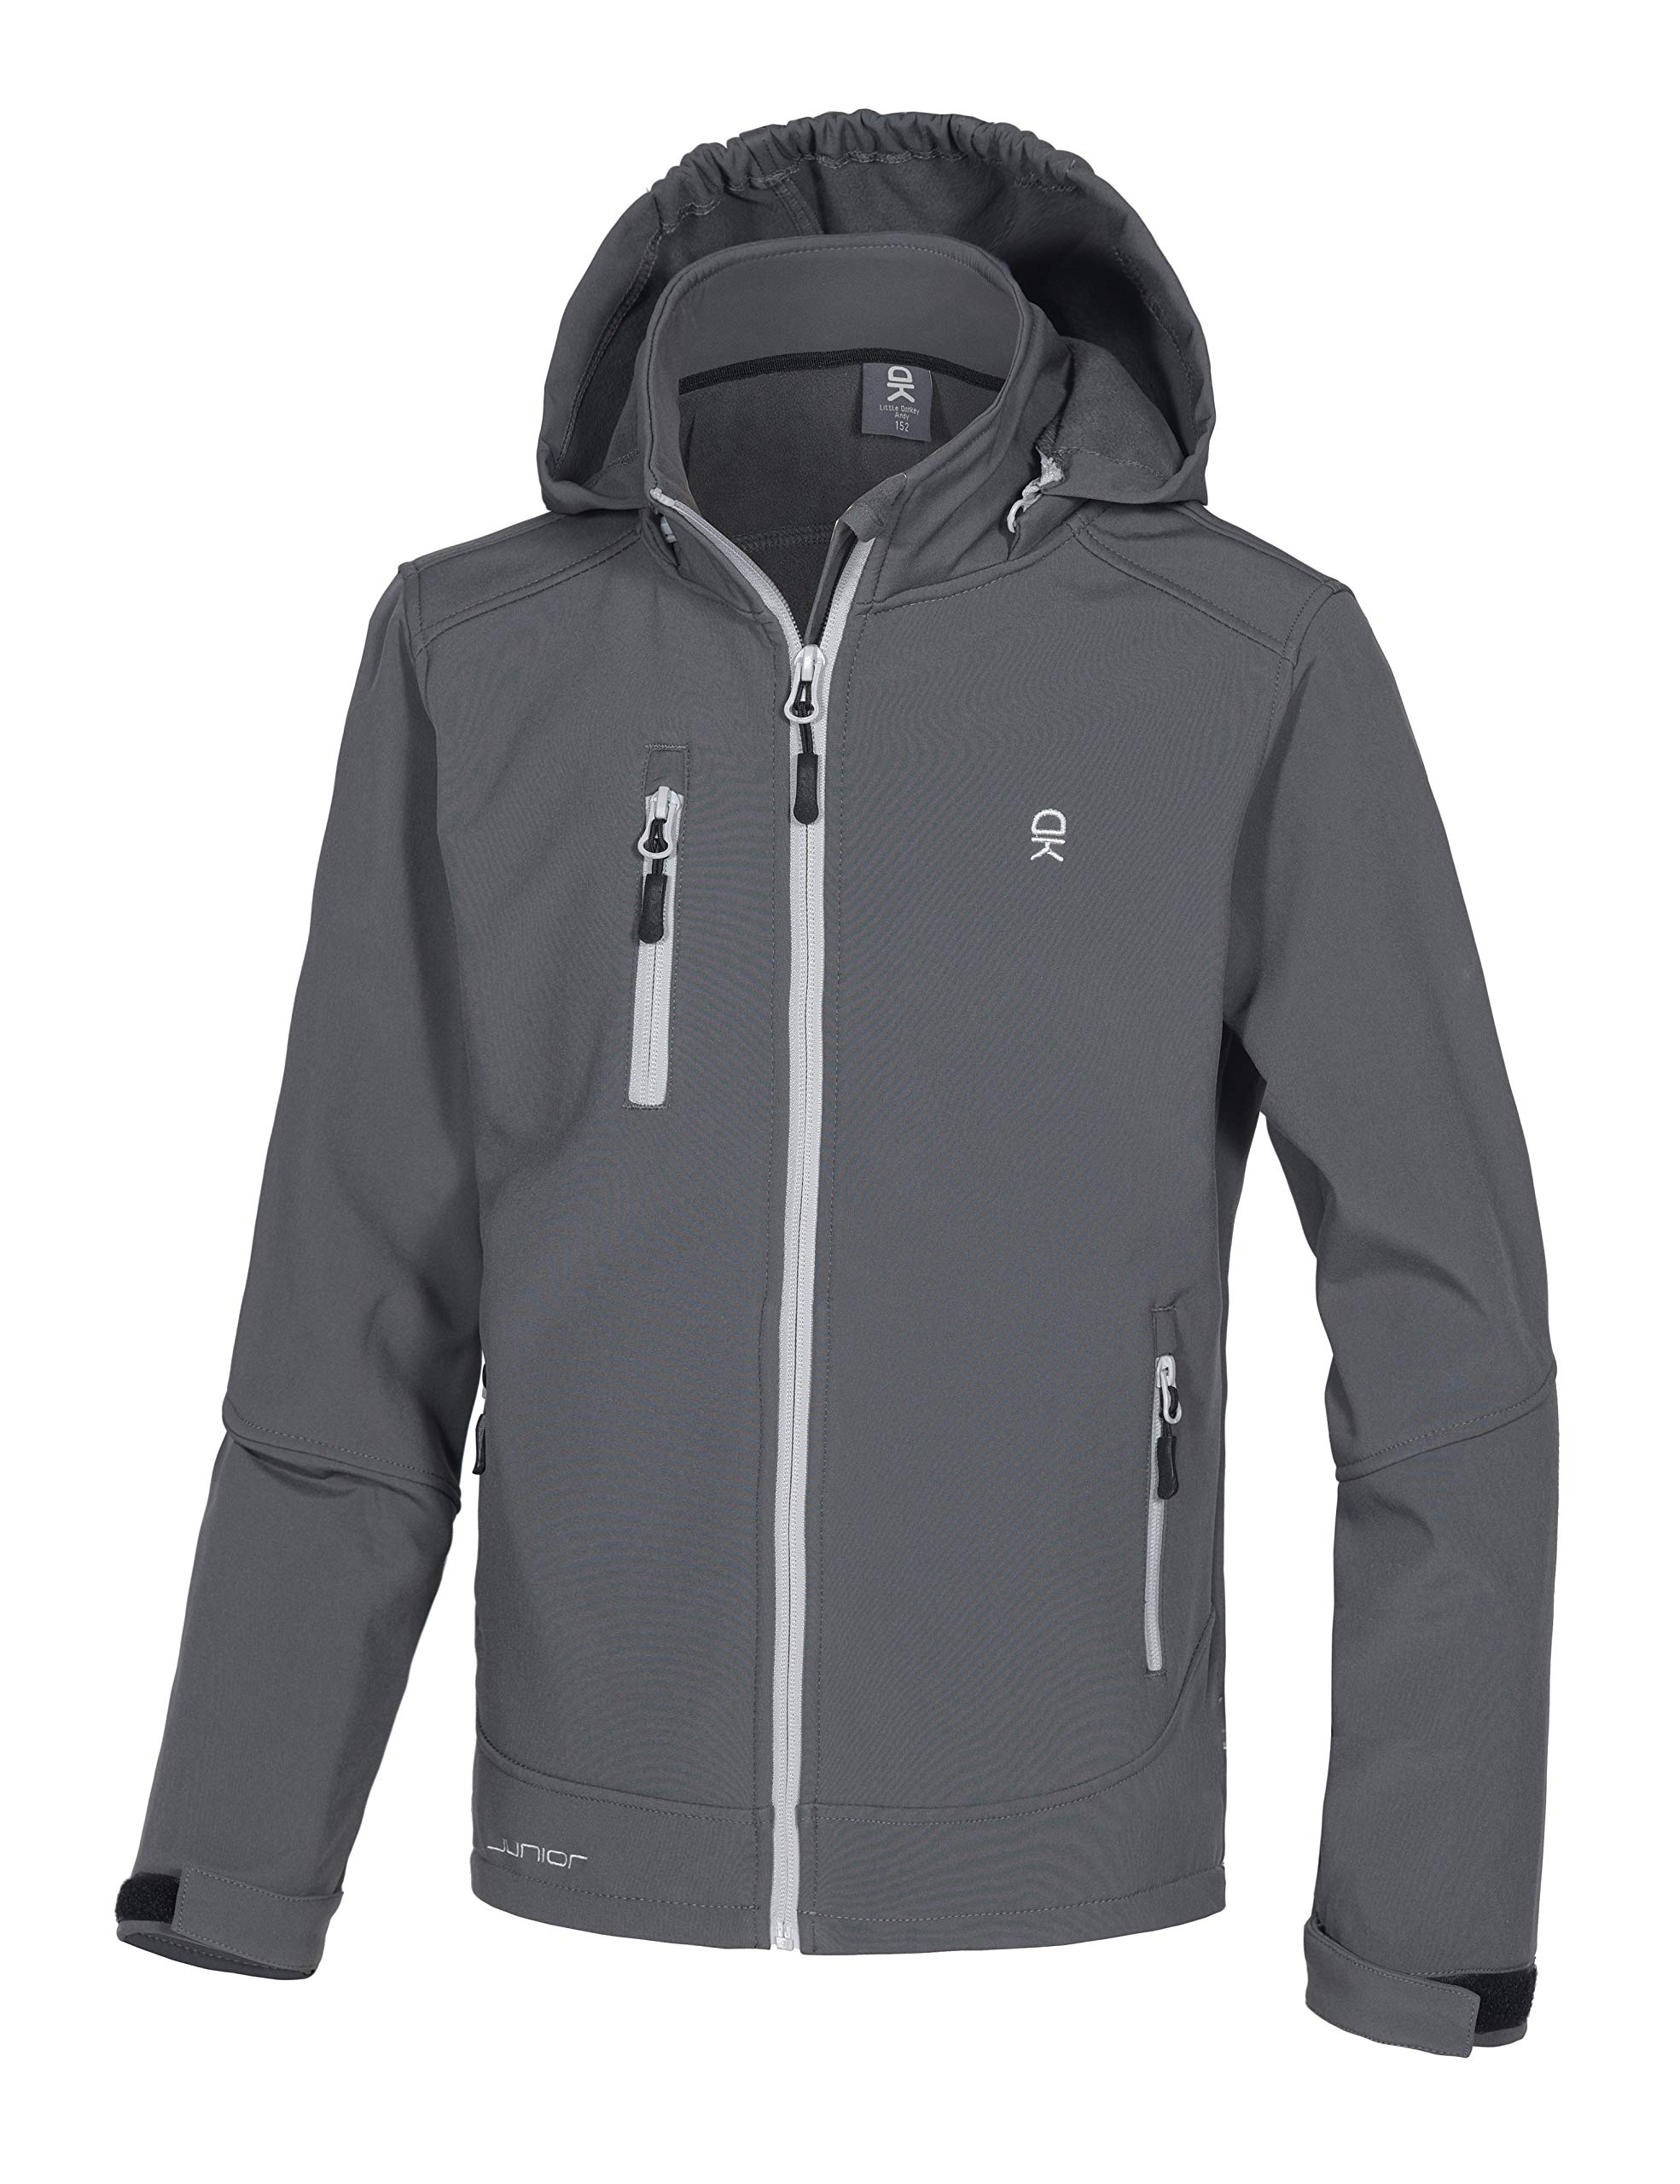 Little Donkey Andy Boys' Youth Softshell Jacket with Removable Hood, Fleece Lined and Water Repellent